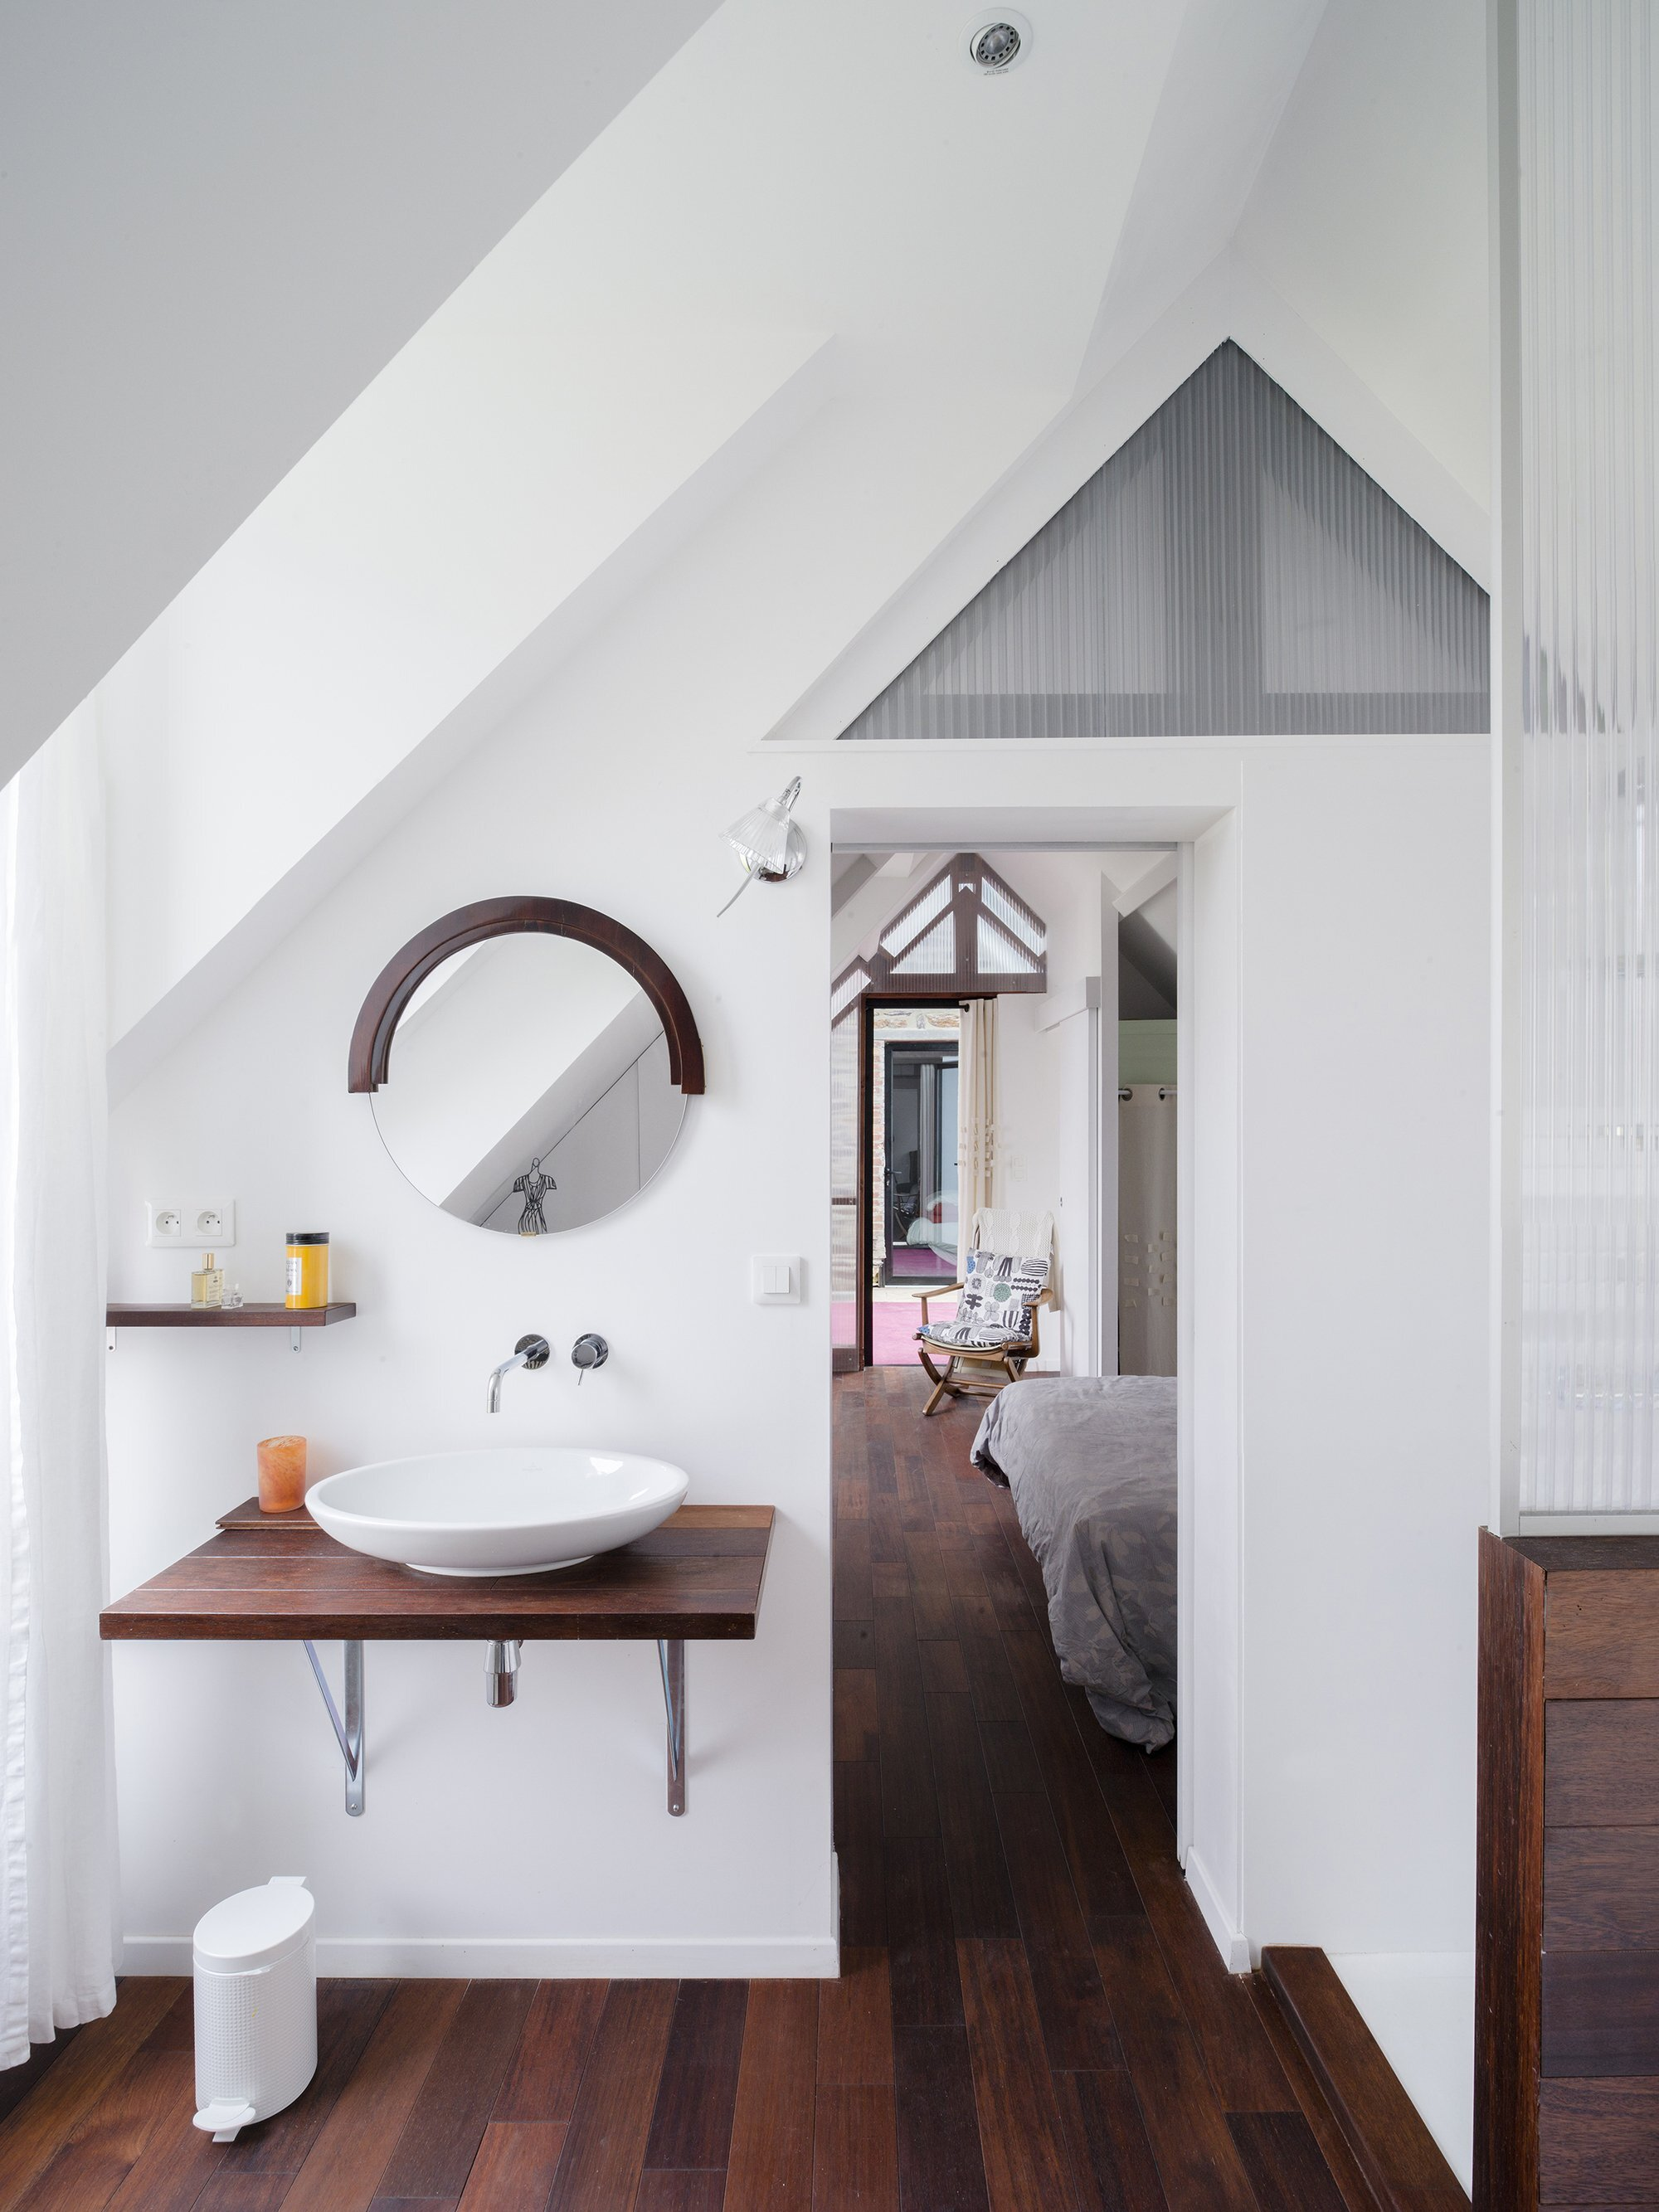 The House Between - Clément Bacle Architect - France - Rennes - Bedroom - Humble Homes